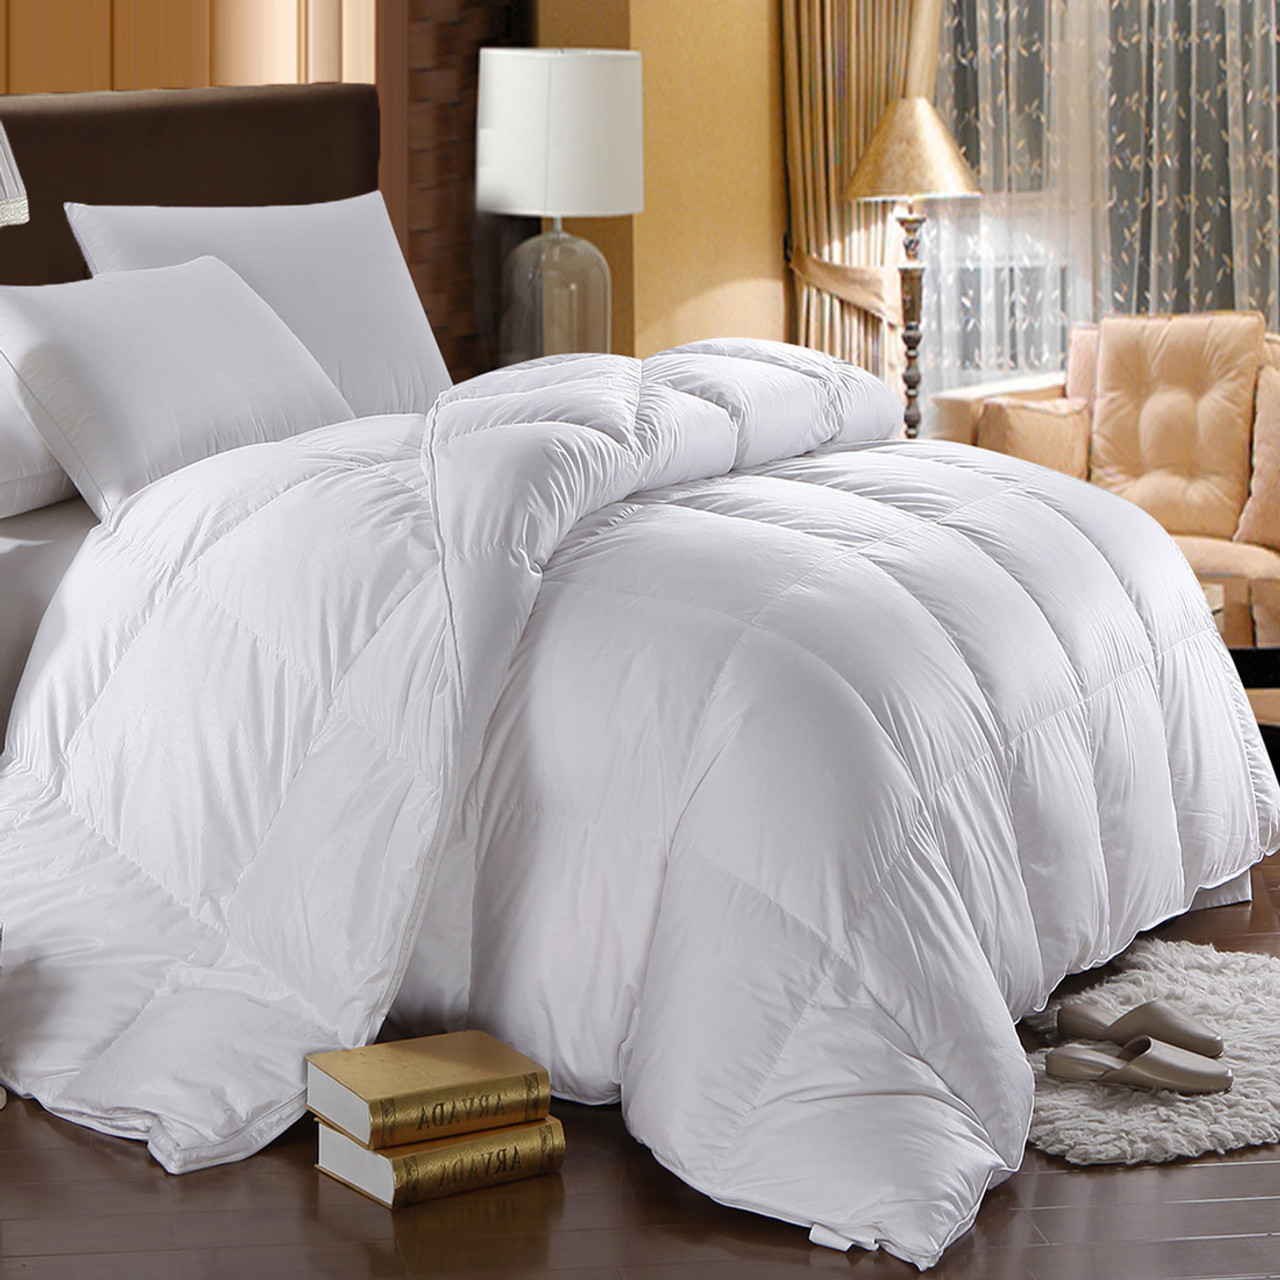 european imageid down product white hotel imageservice profileid comforter recipename grand